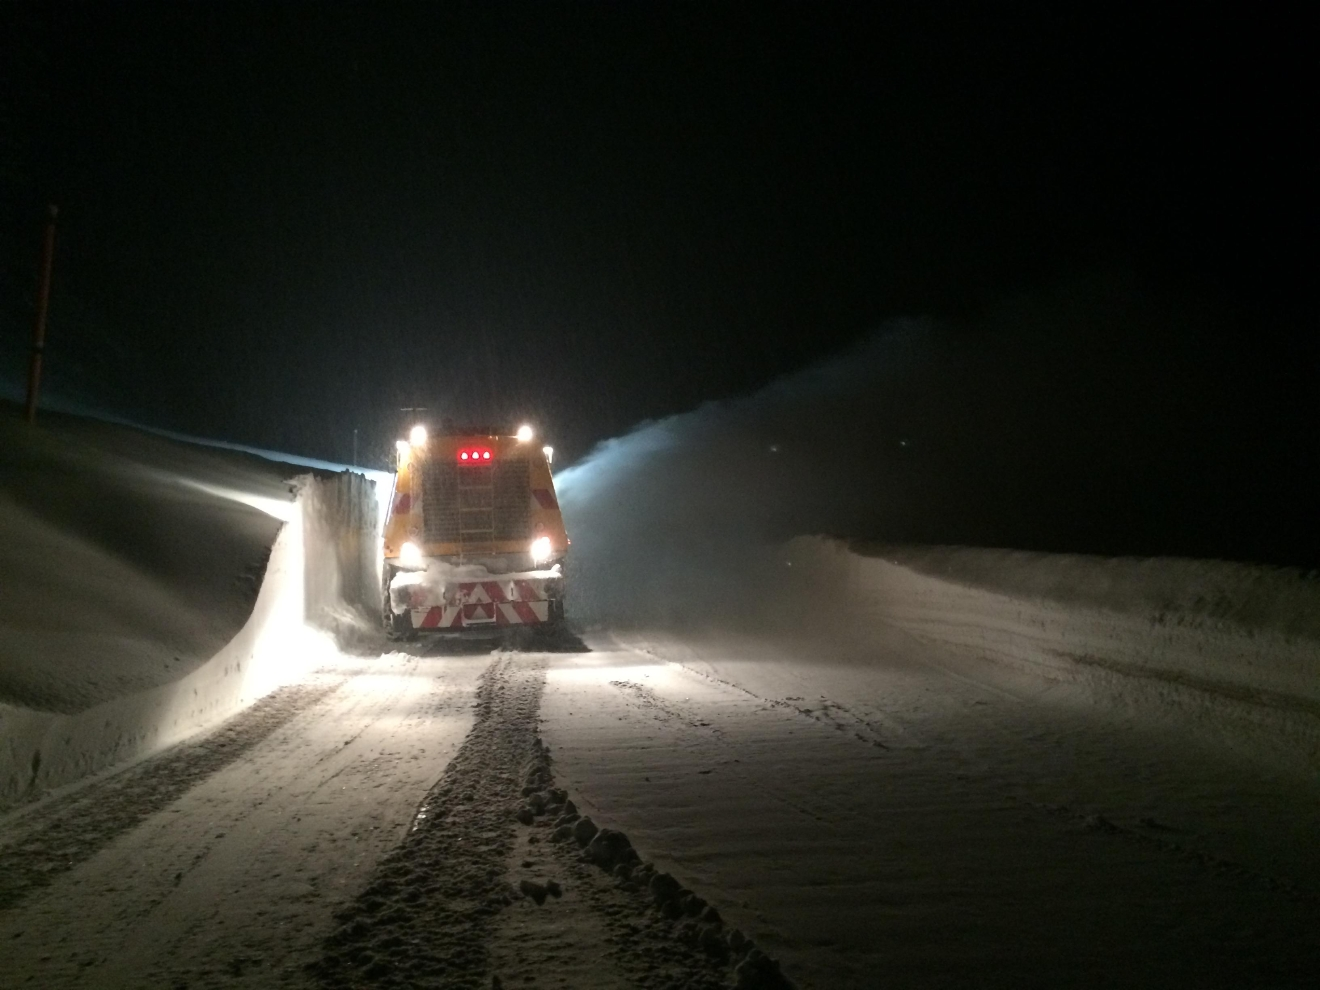 The Linn County Sheriff's Office advises drivers to avoid Santiam Pass. Avalanches and a semi truck are blocking the roadway and tow trucks will not respond overnight. Photo courtesy Linn County Sheriff's Office